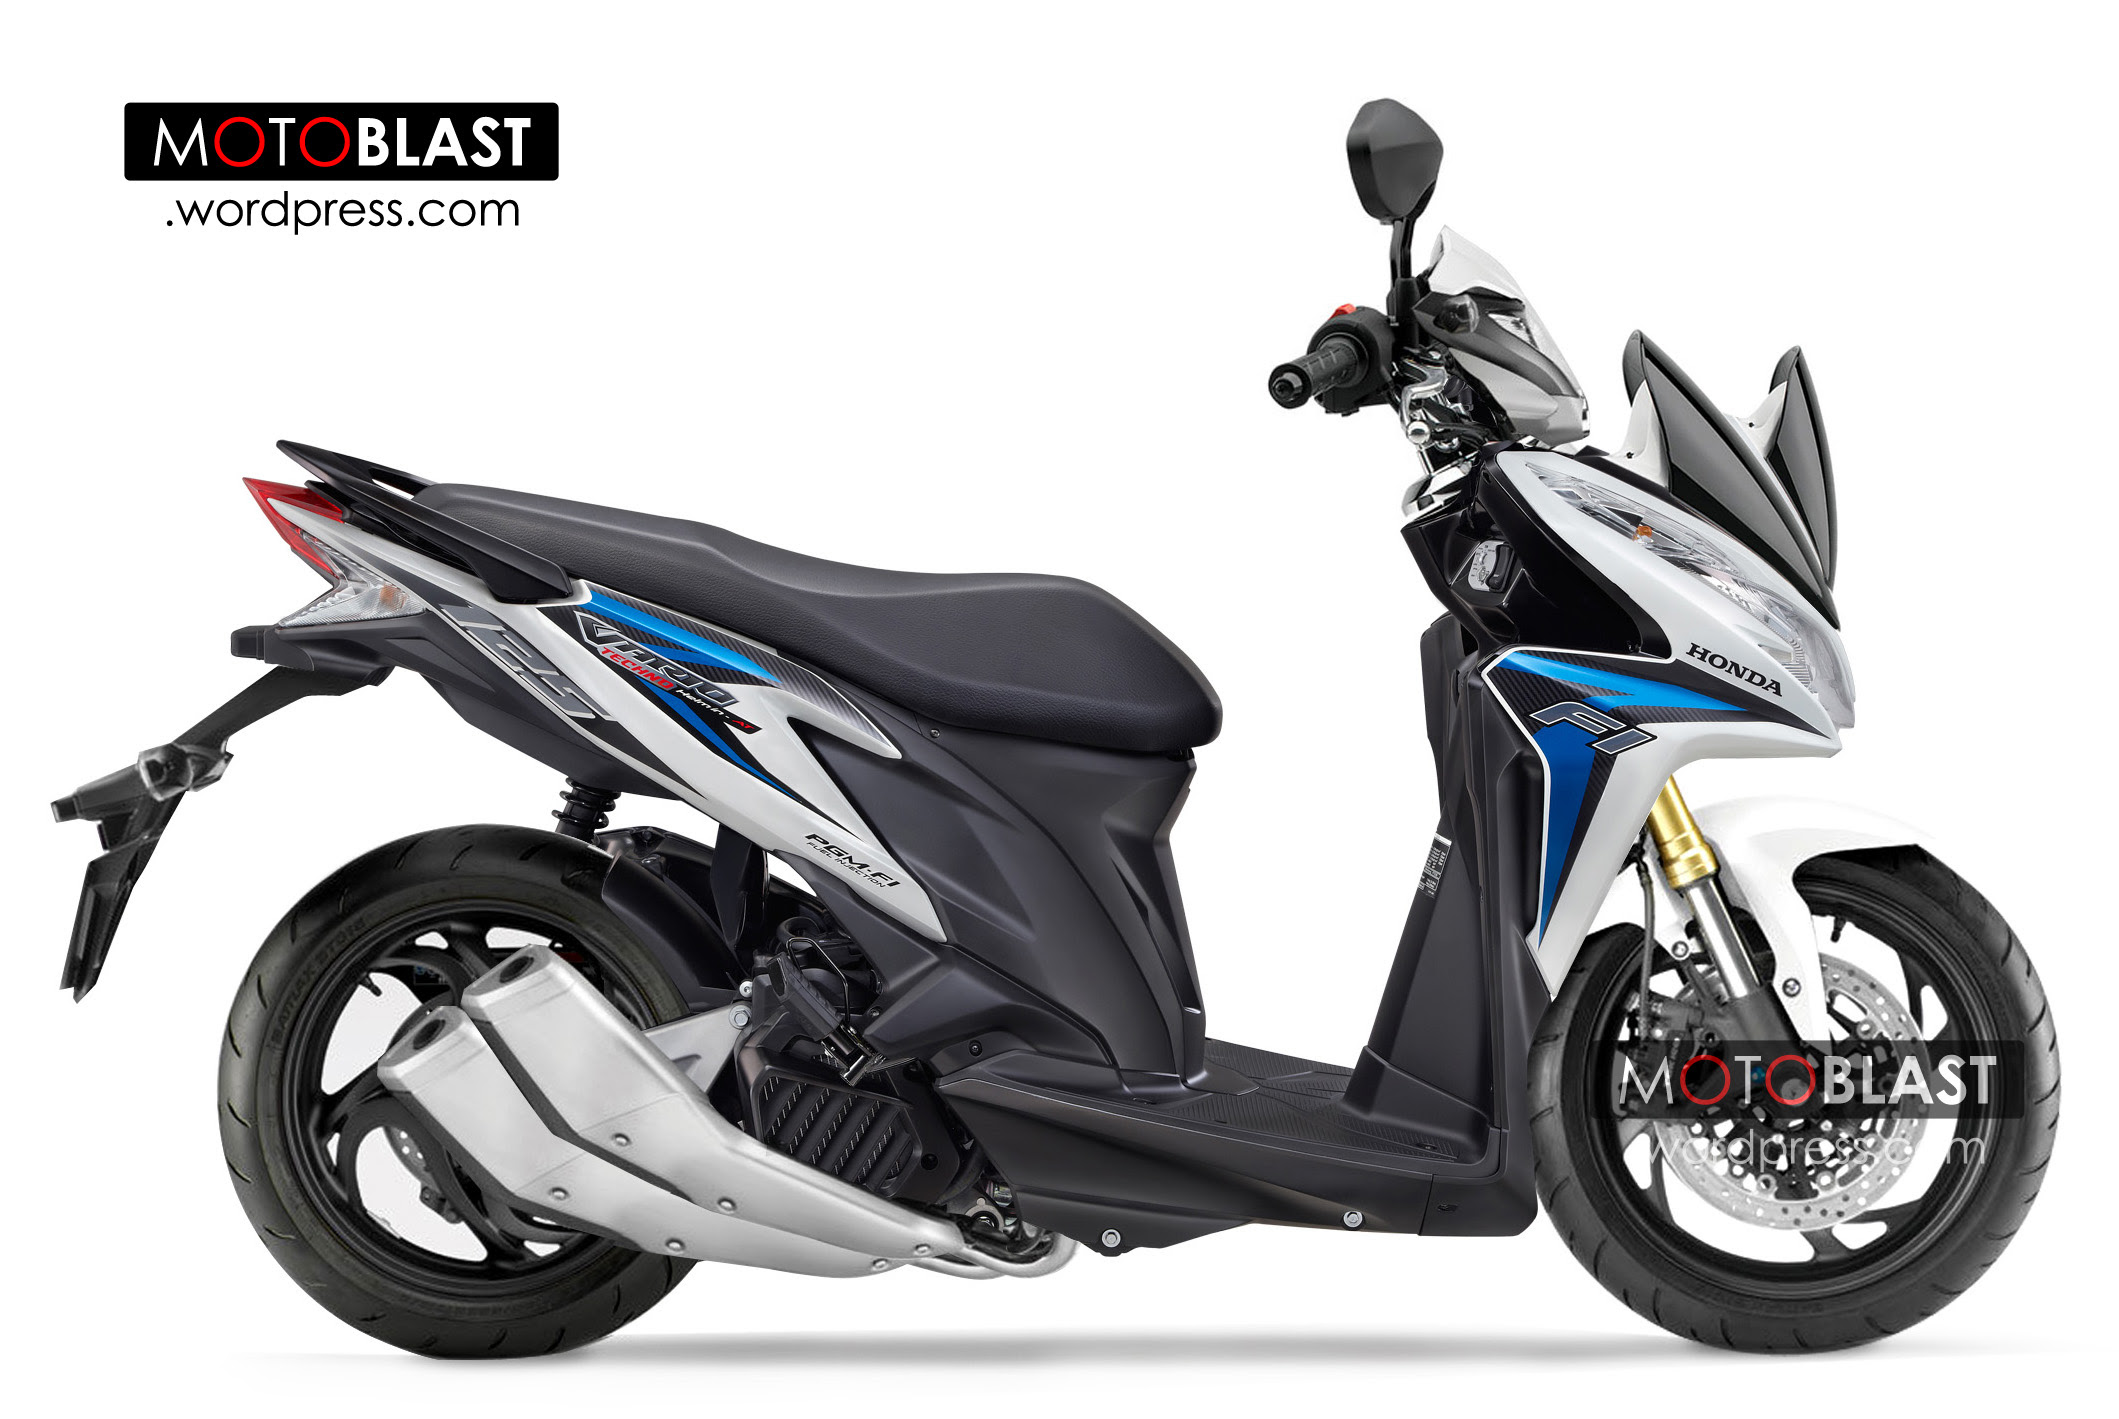 Modifikasi Vario Fighter Kumpulan Modifikasi Motor Vario